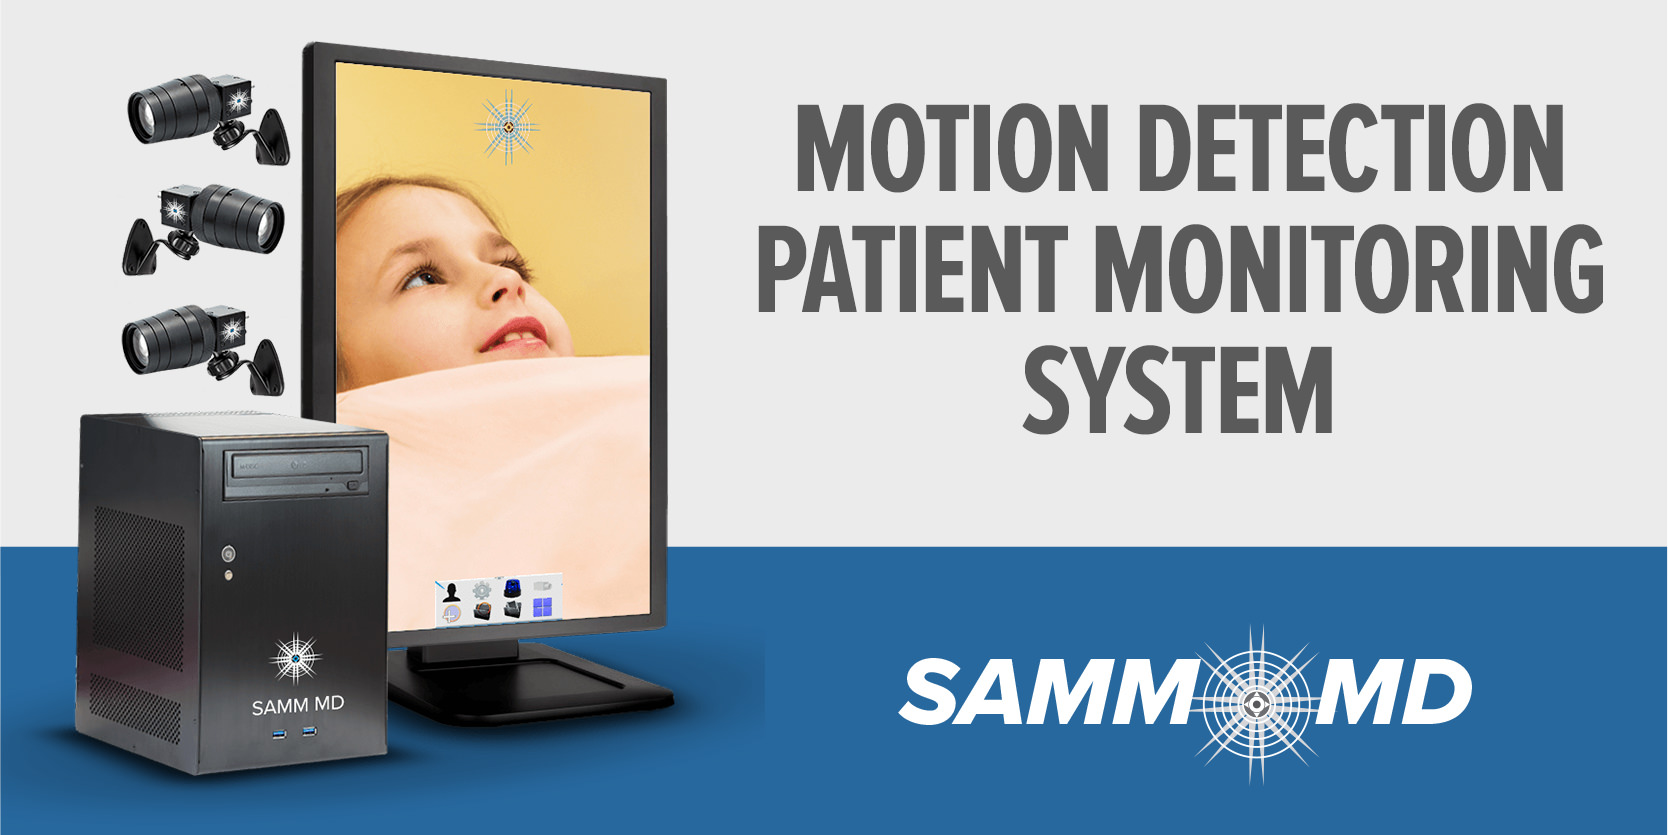 SAMM MD Motion Detection Patient Monitoring System by Sound Imaging